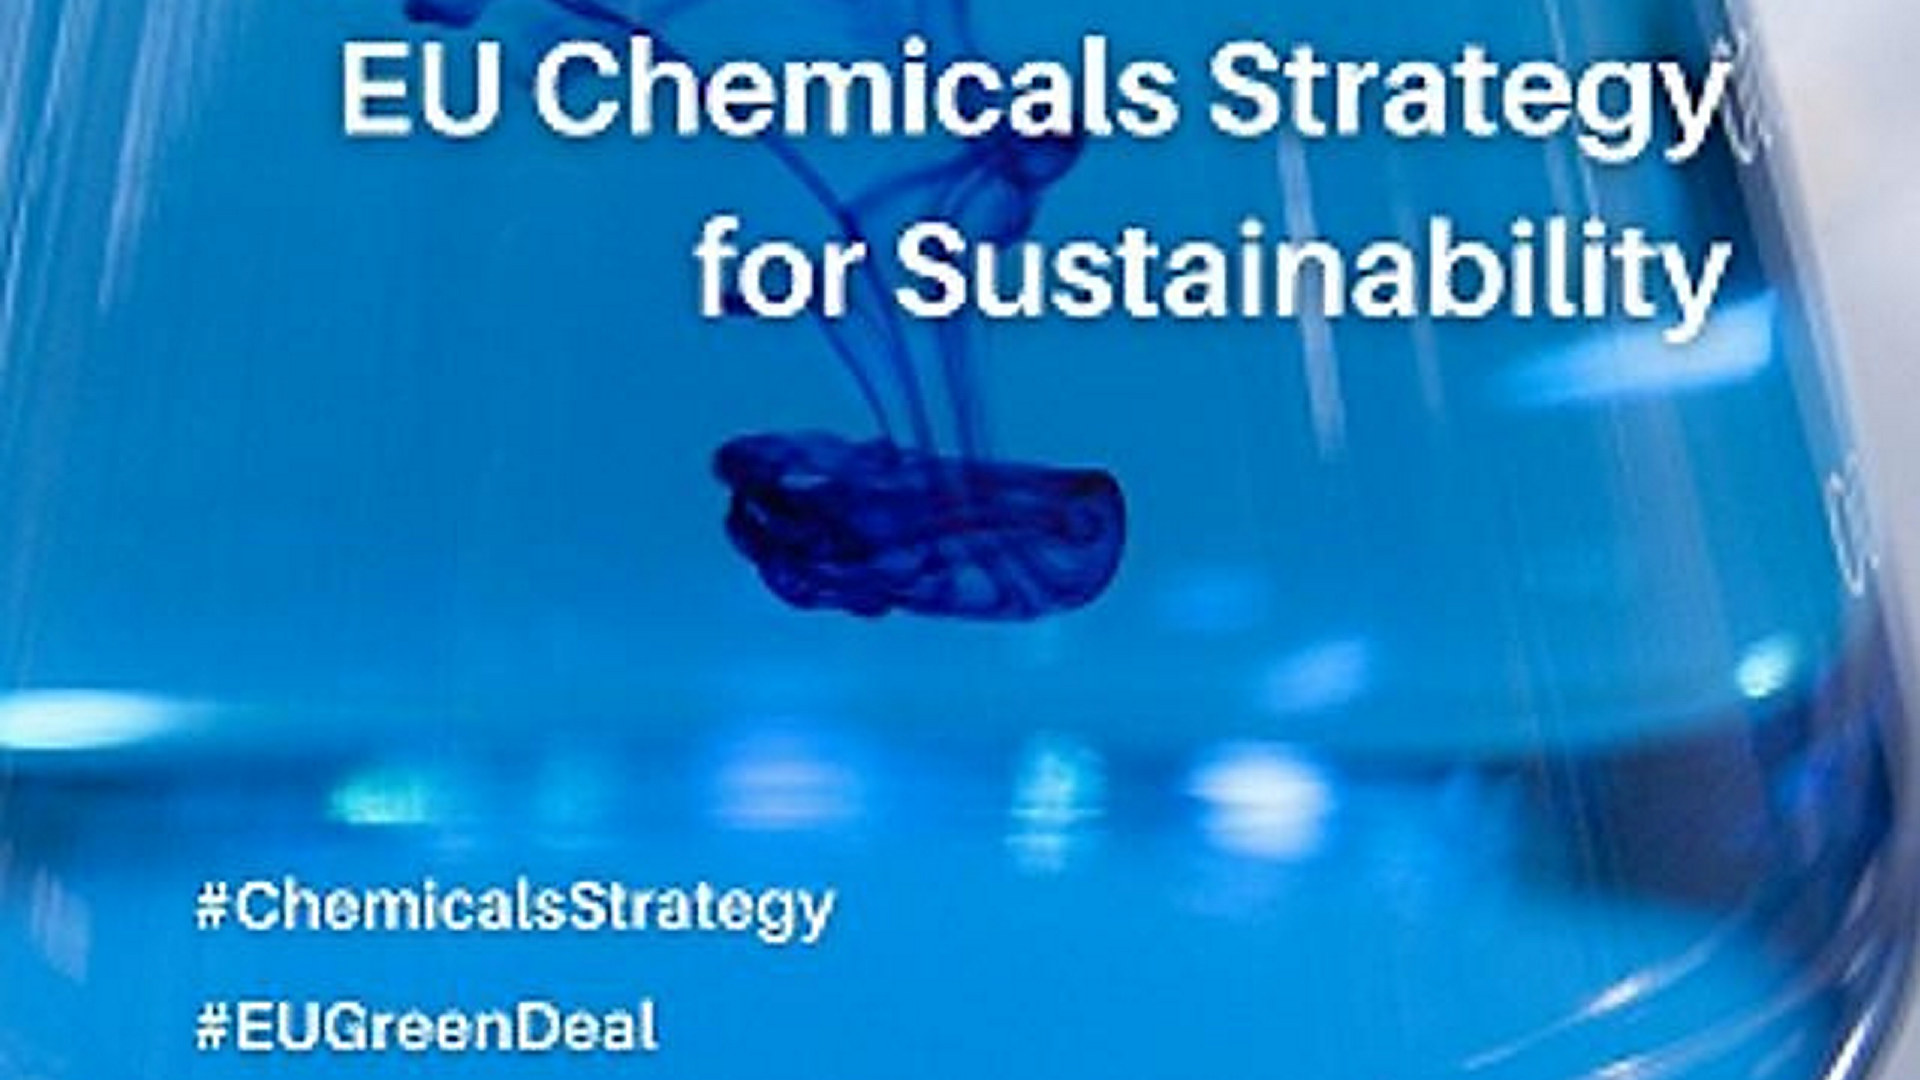 EU Chemicals Strategy for Sustainability. Copyright: European Commission 2020